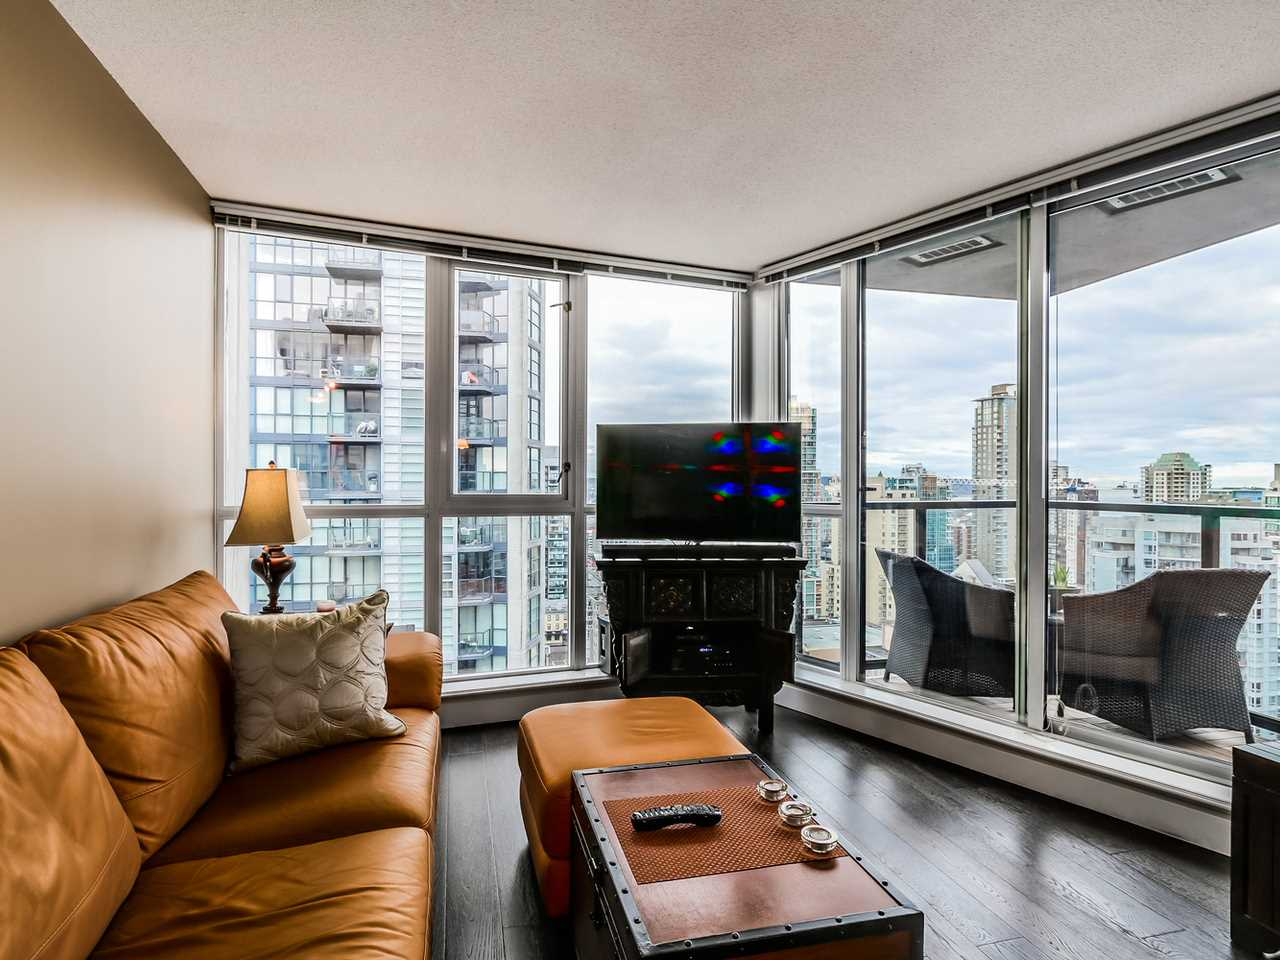 Main Photo: 2308 1155 SEYMOUR STREET in Vancouver: Downtown VW Condo for sale (Vancouver West)  : MLS® # R2026499